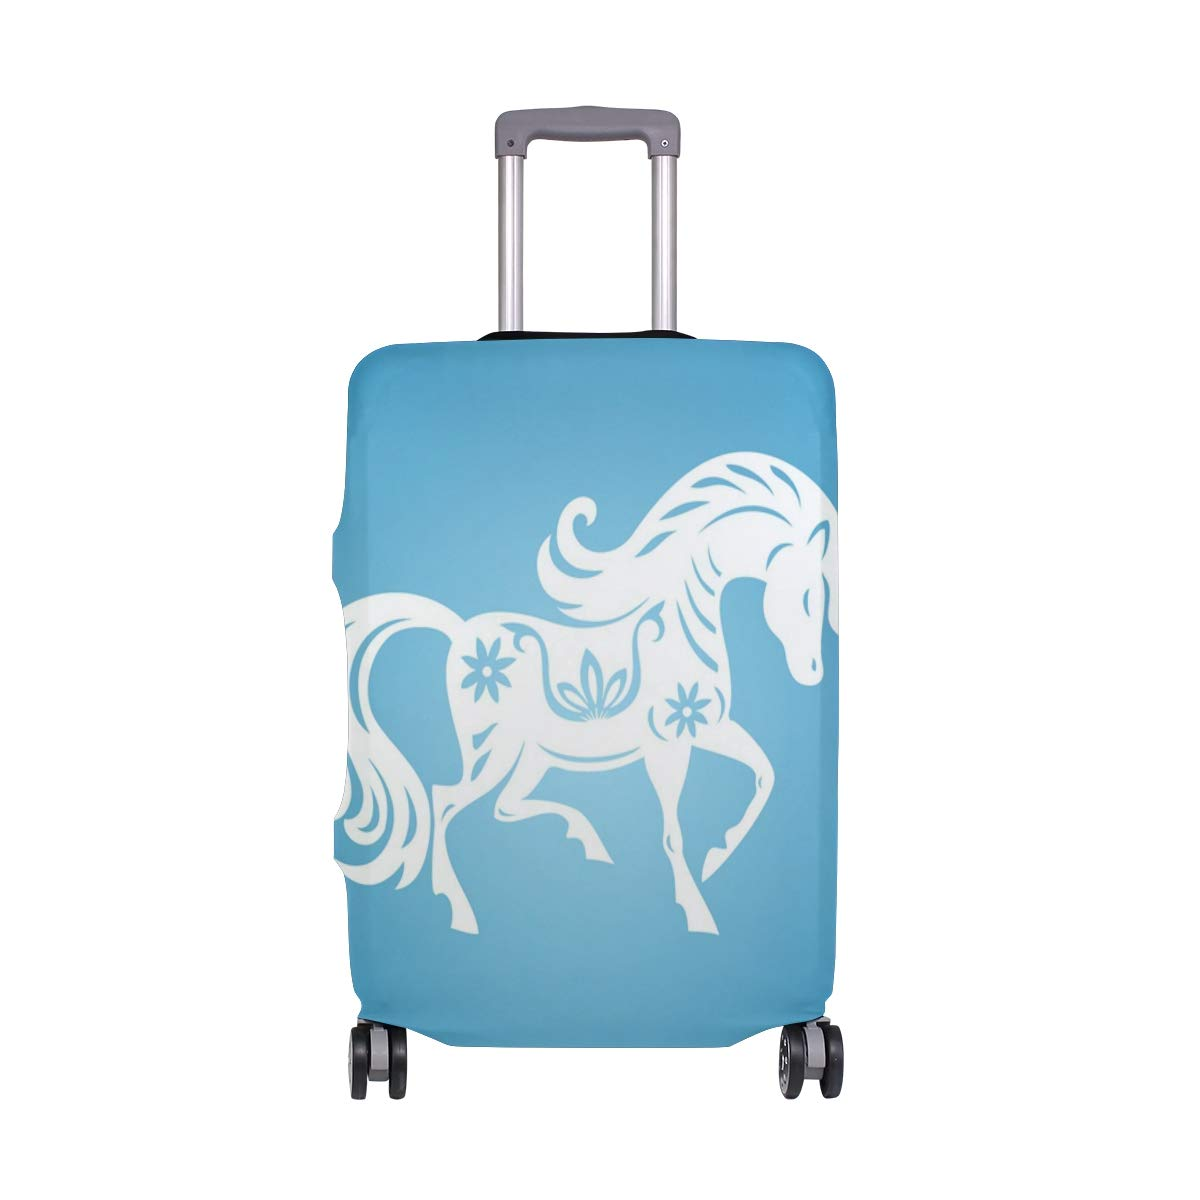 Art Glowing White Horse suitcase cover elastic suitcase cover zipper luggage case removable cleaning suitable for 29-32 trunk cover